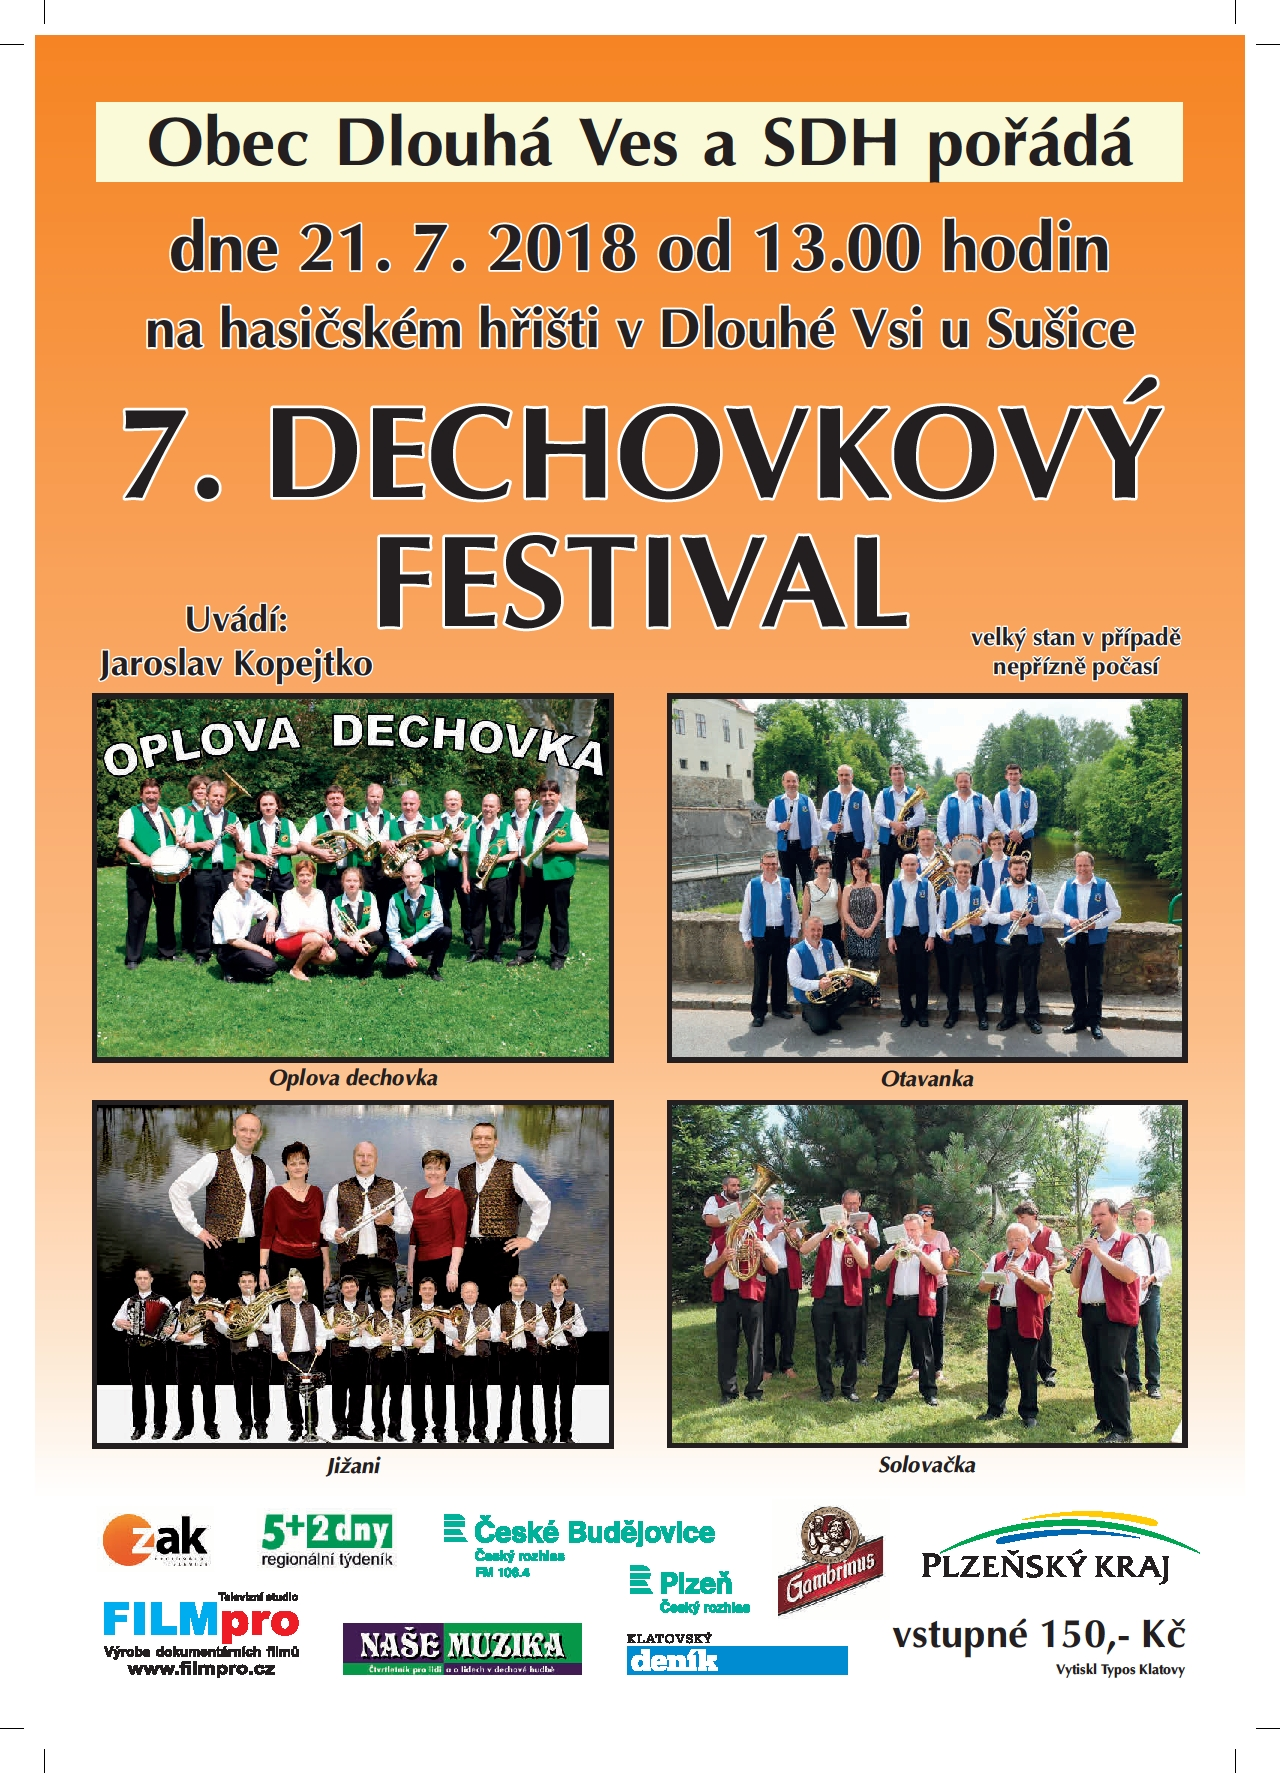 21.7. dechovky festival